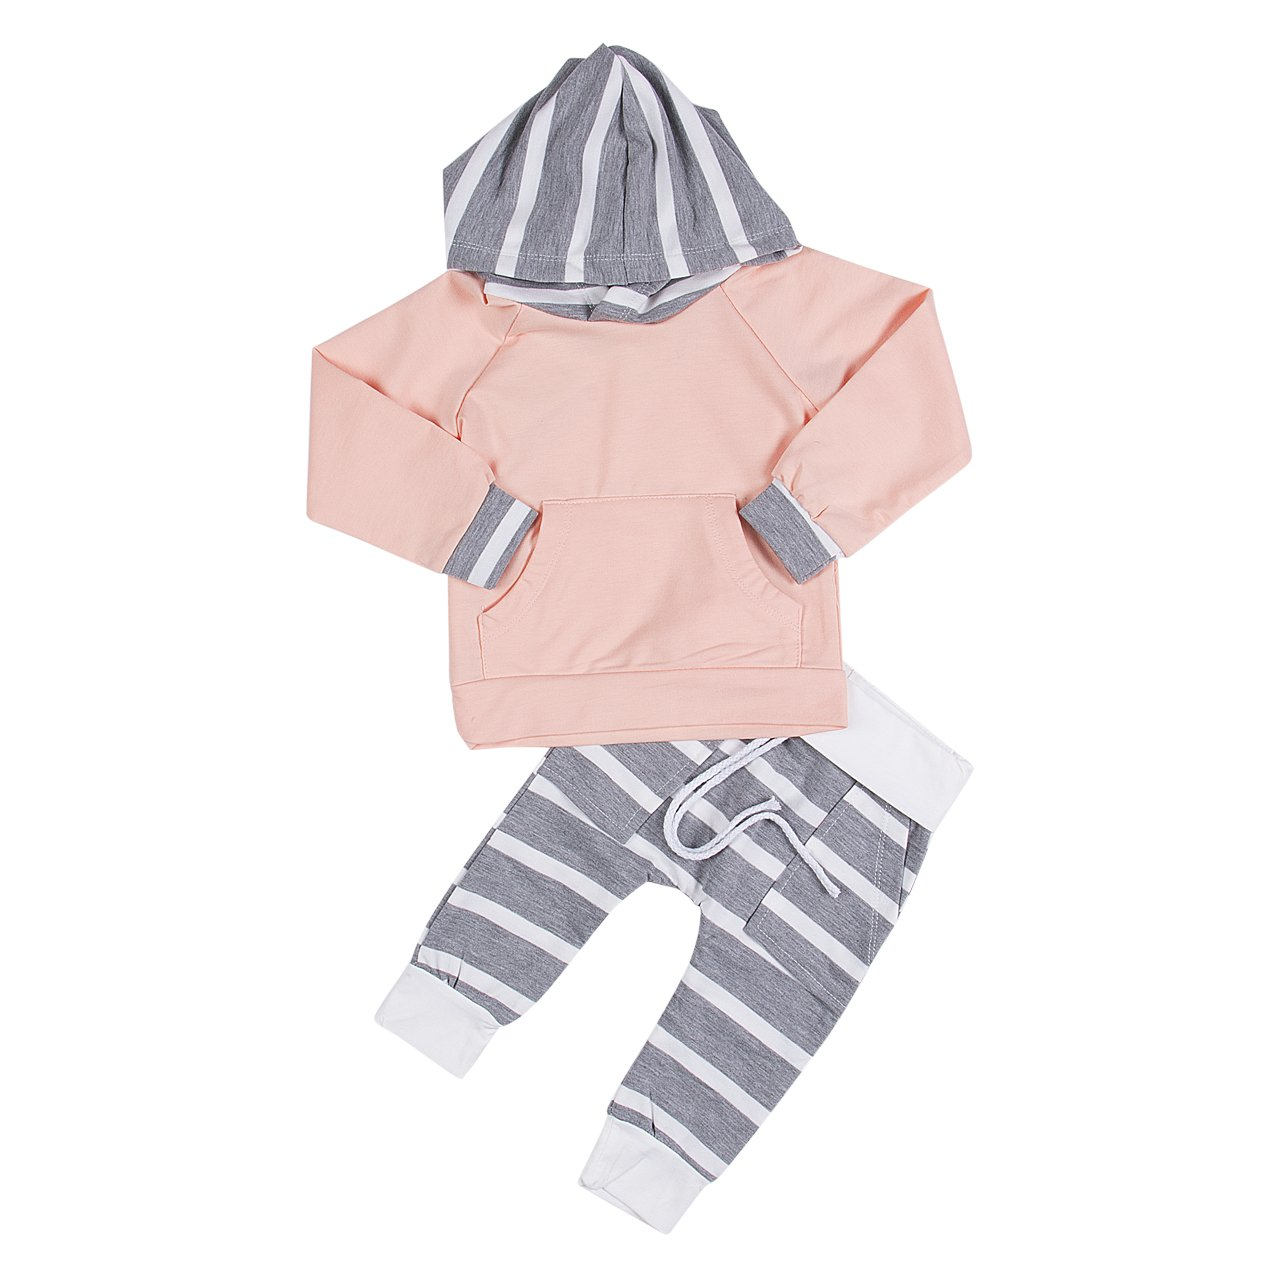 Baby Boys Girl Hoodies Top with Pocket+ Striped Long Pants 2pcs Pants Outfit Set